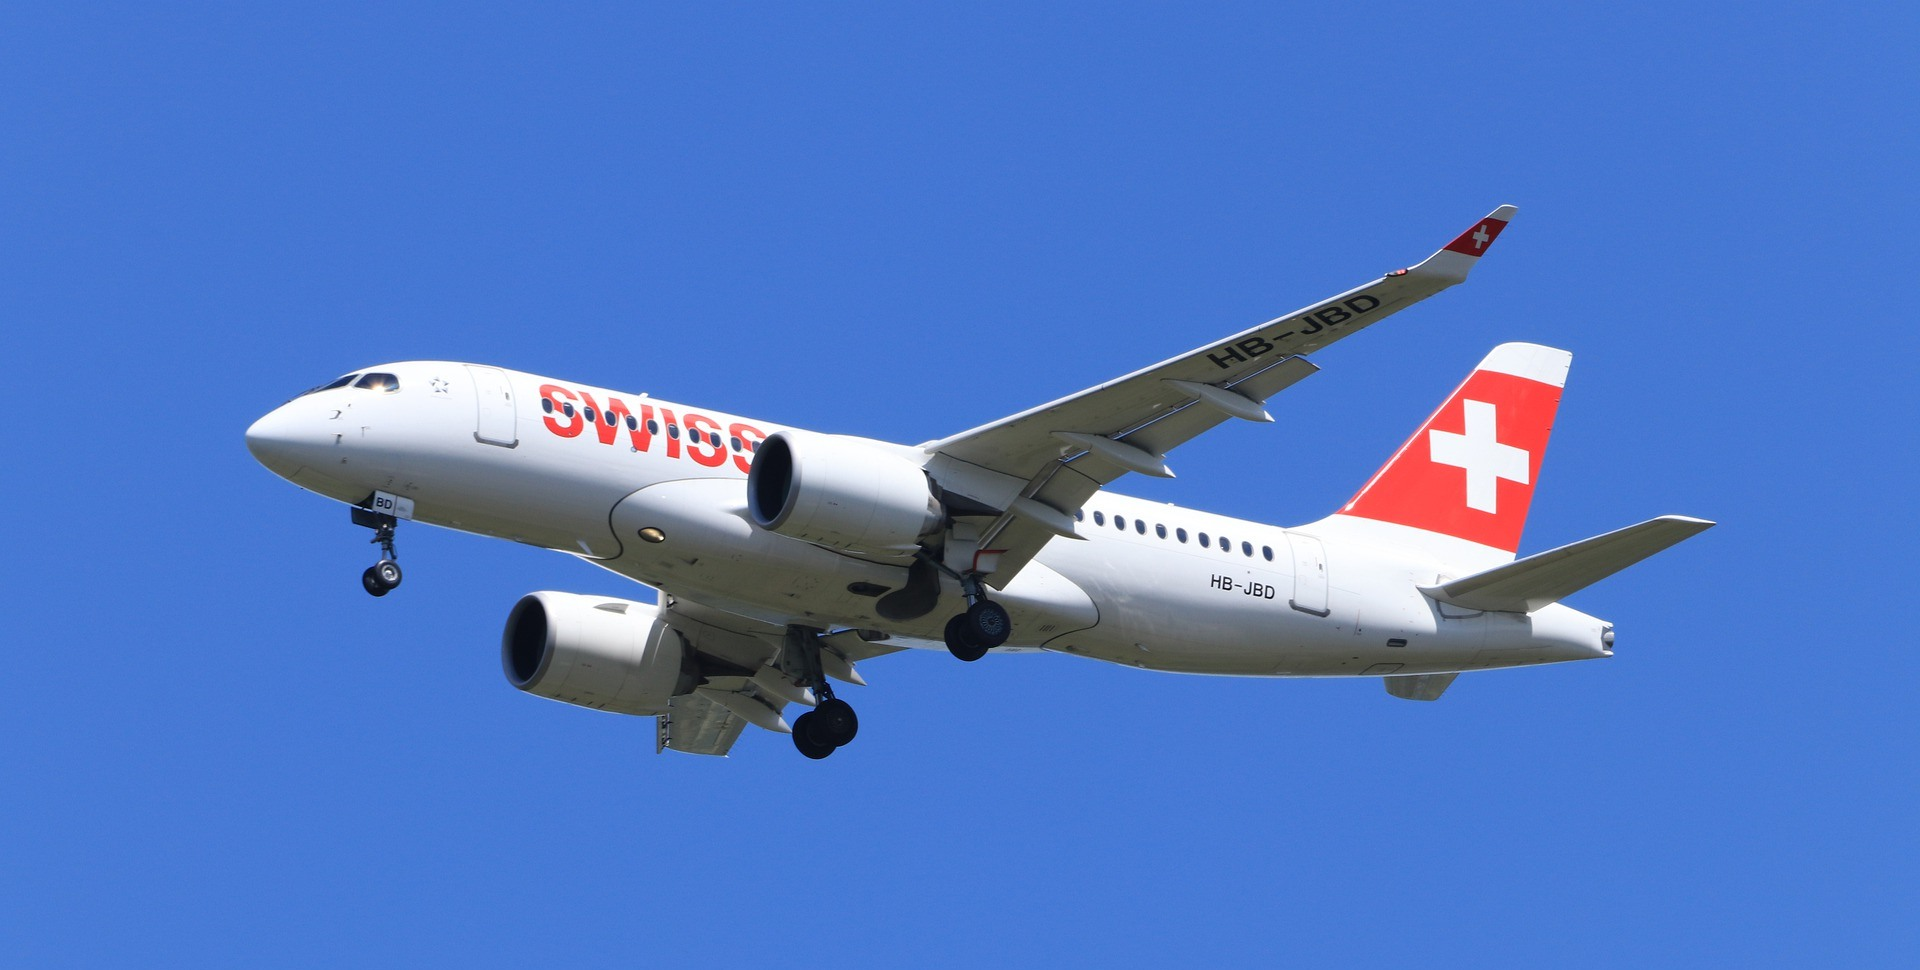 Swiss Air Plane